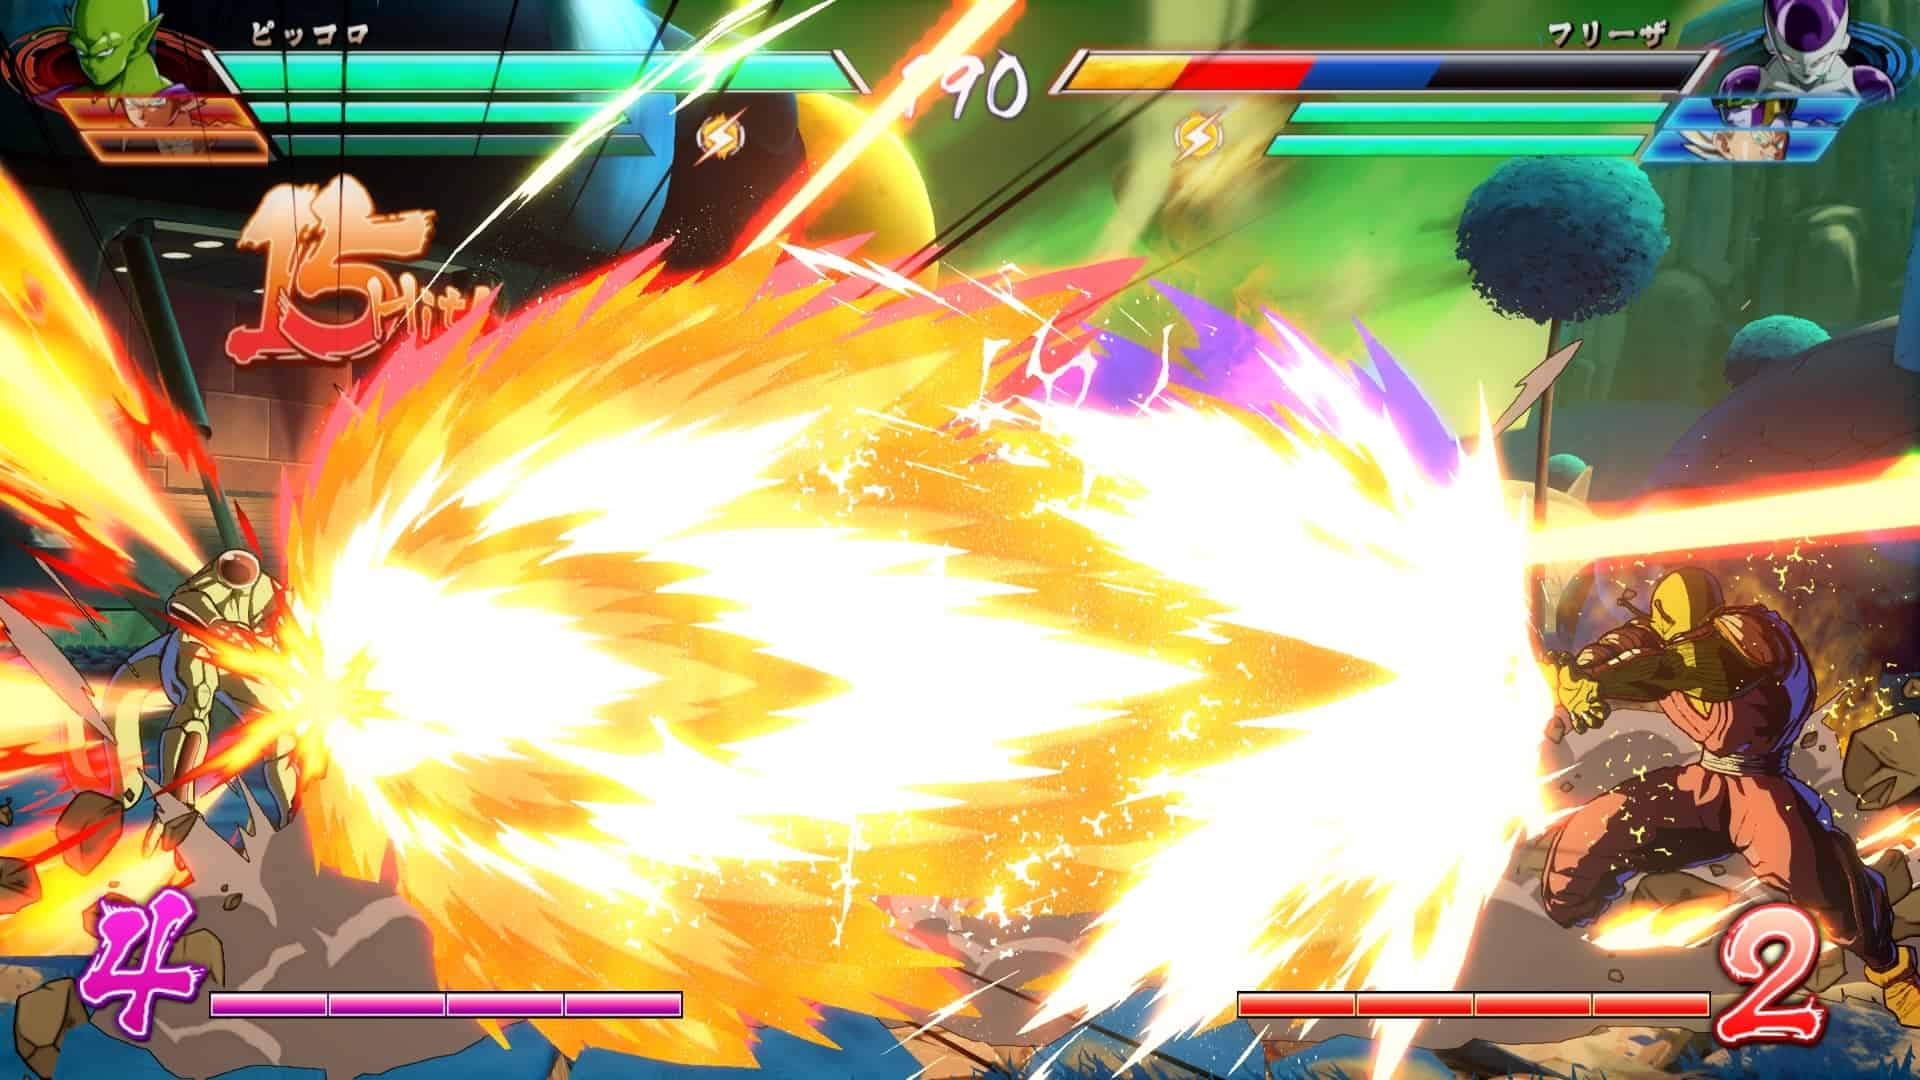 Bandai Namco Details and Shows Off Piccolo & Krillin from Dragon Ball FighterZ